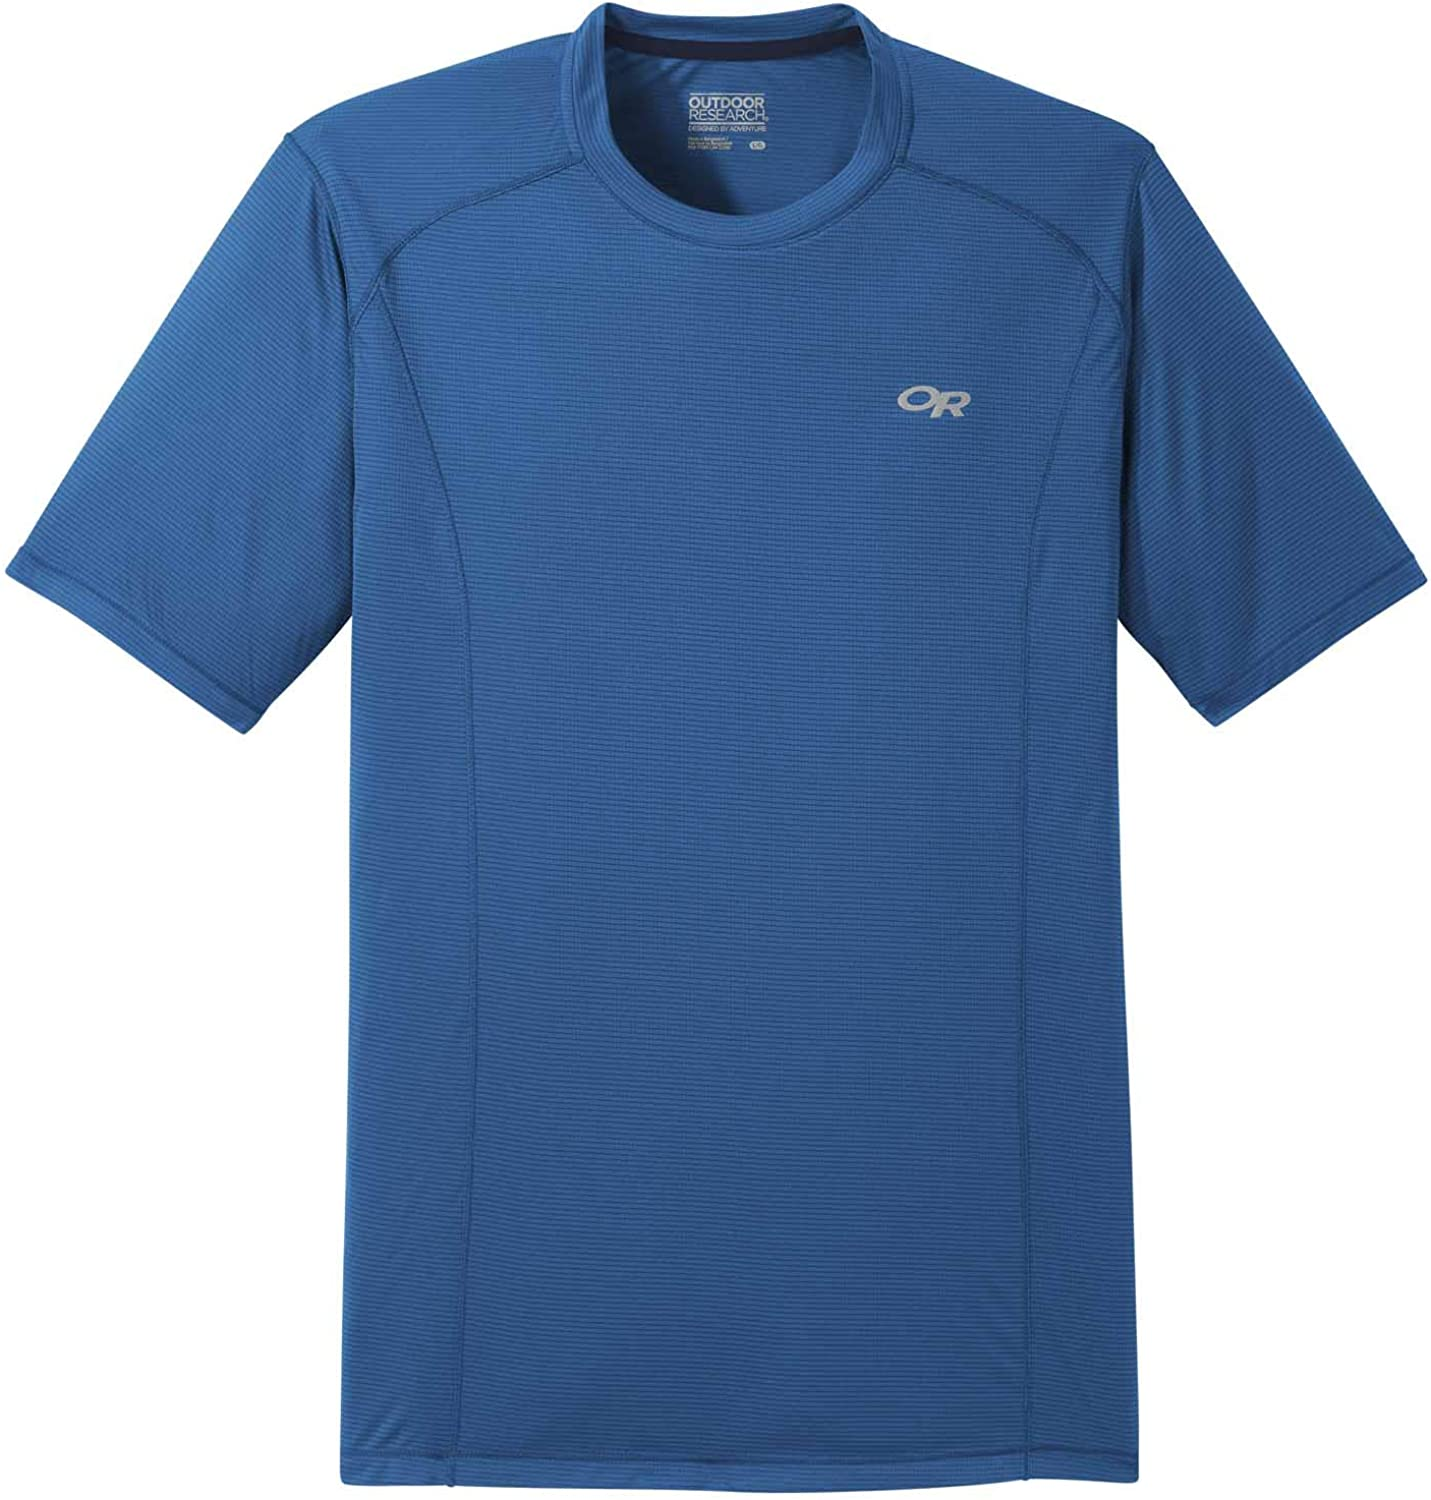 Outdoor Research Super Special SALE held Mens' S Miami Mall Tee Echo